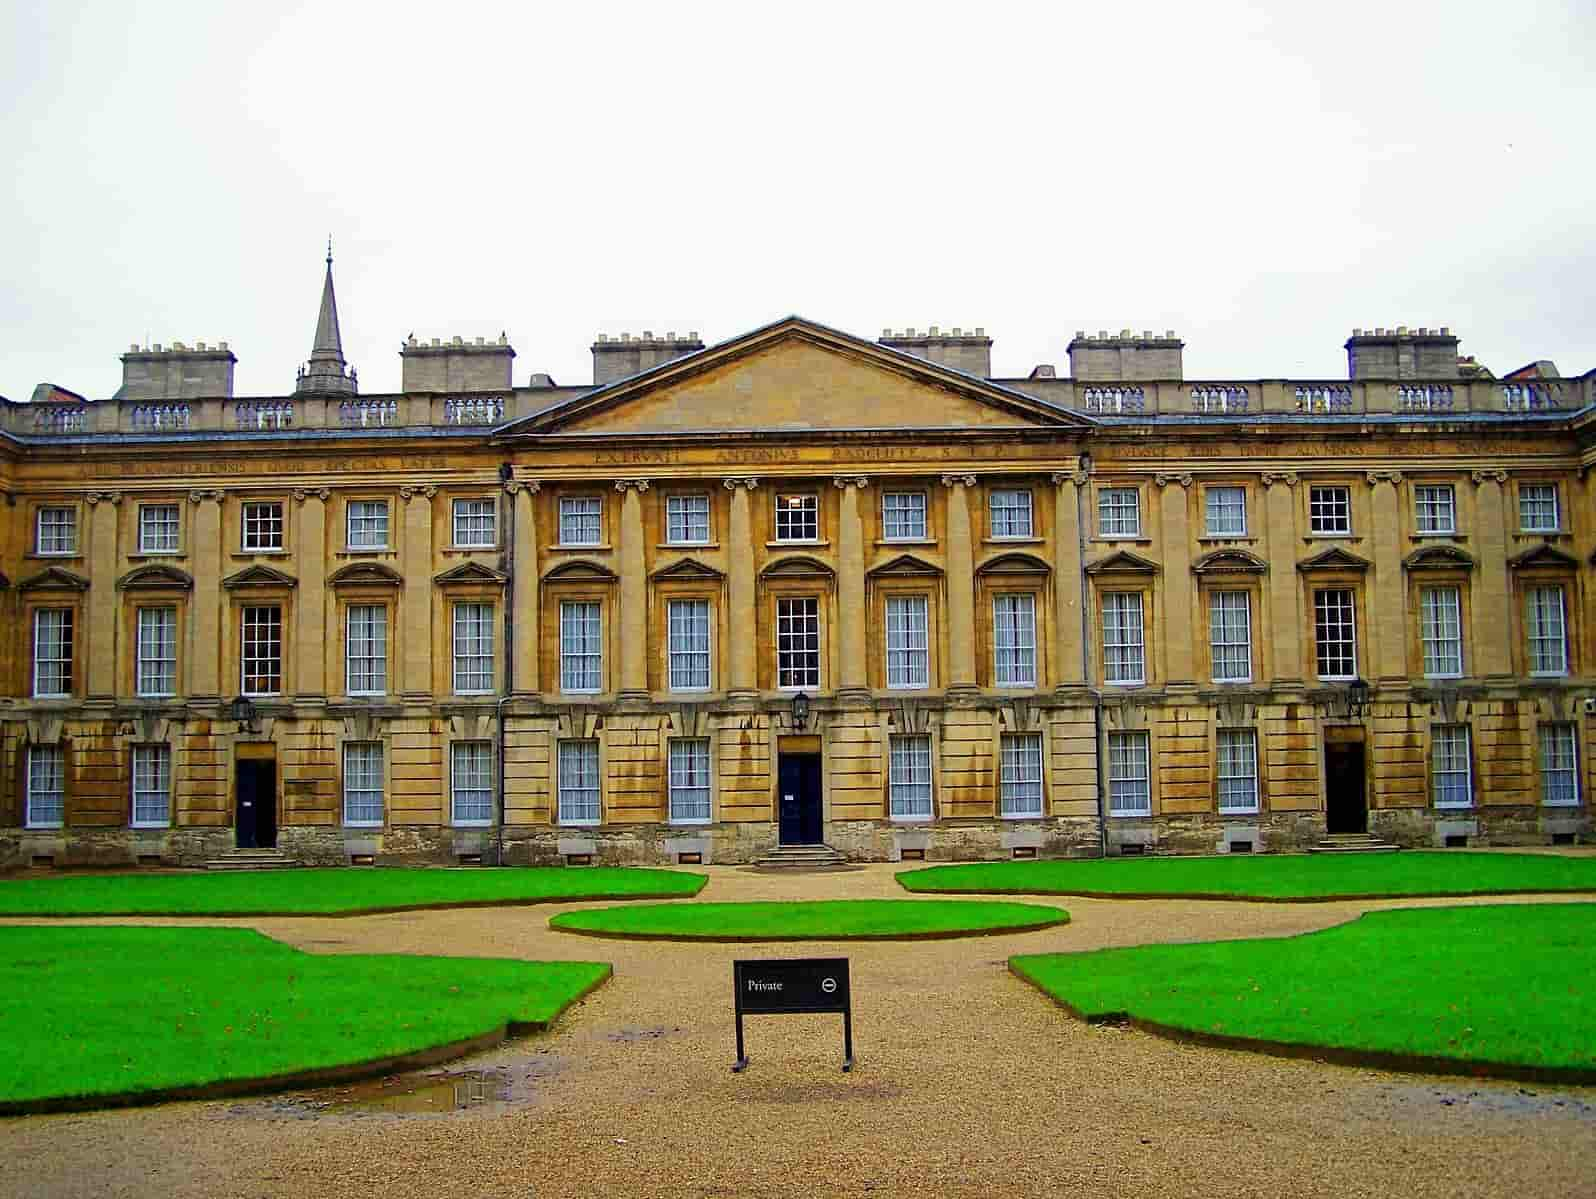 The Christ Church College Rooms and grounds in Oxford on a cloudy day.